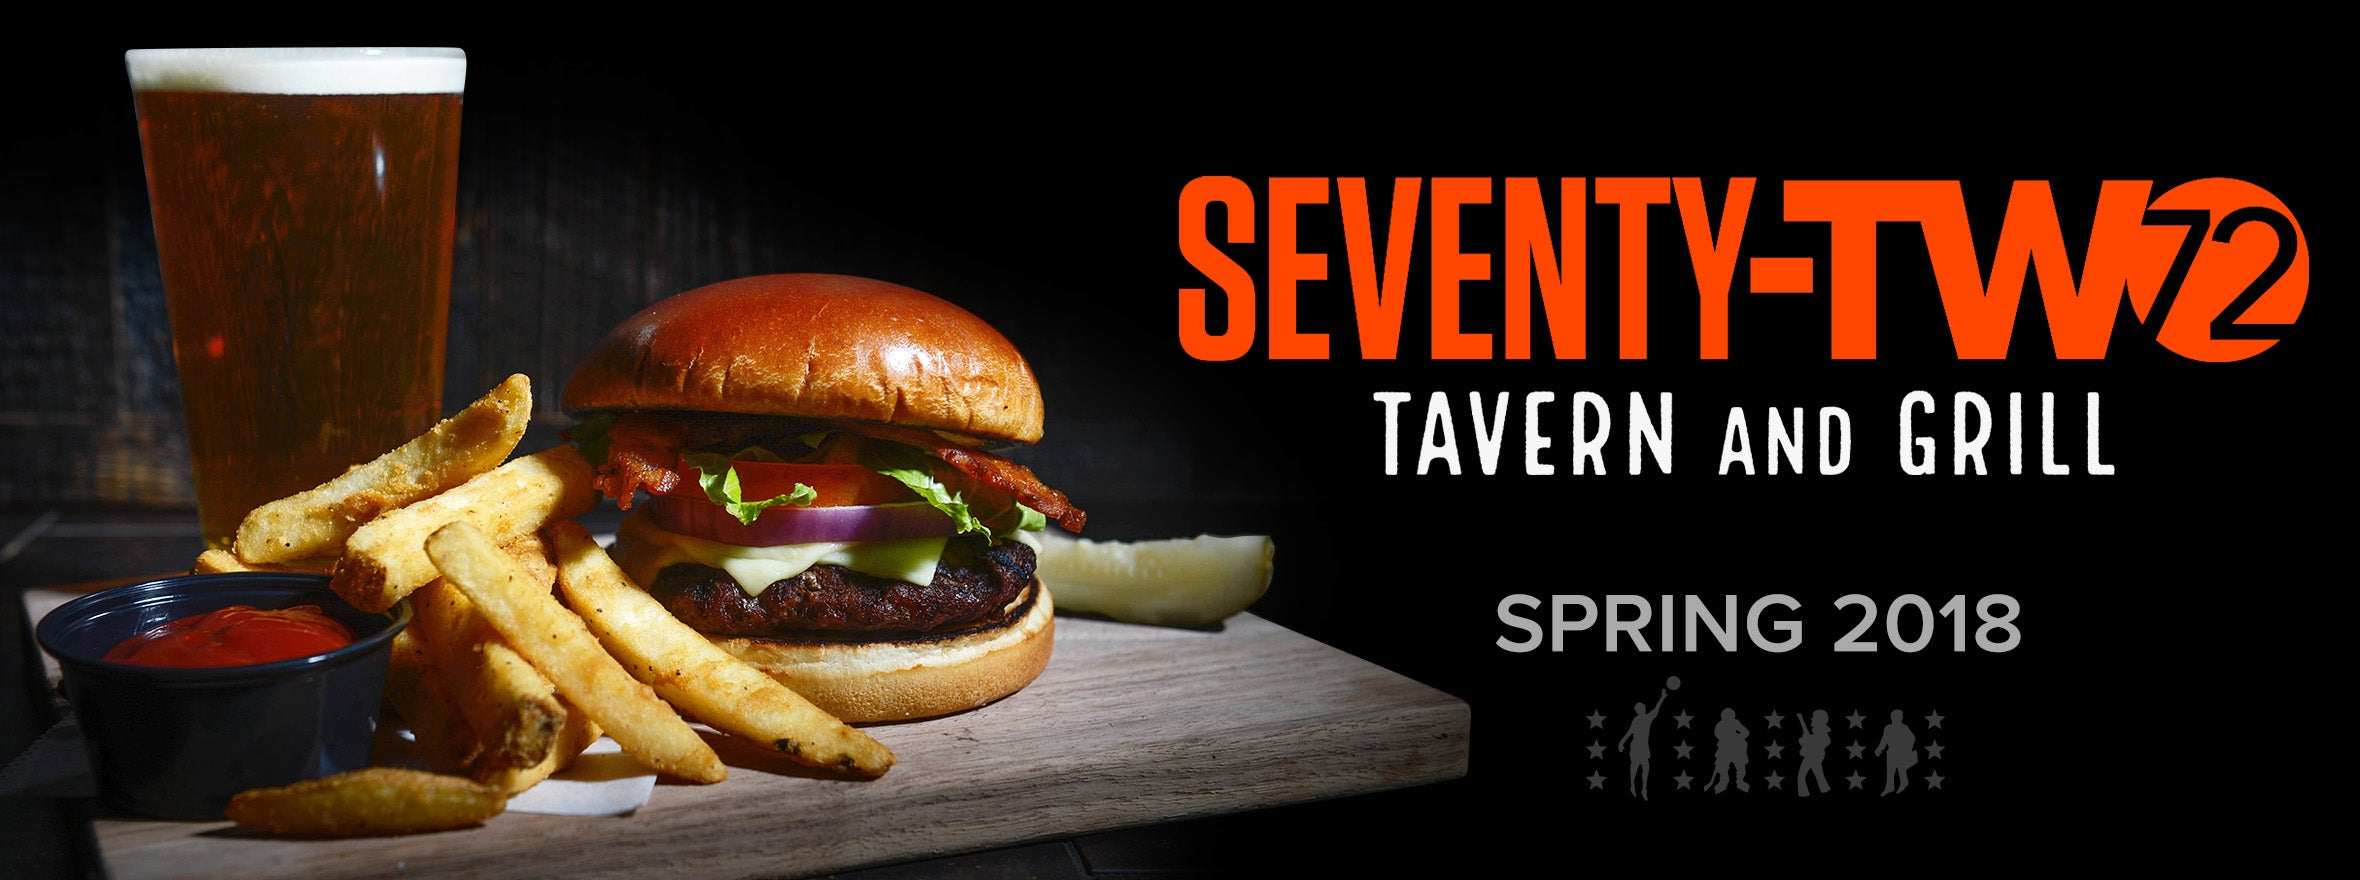 72 TAVERN & GRILL COMING THIS SPRING